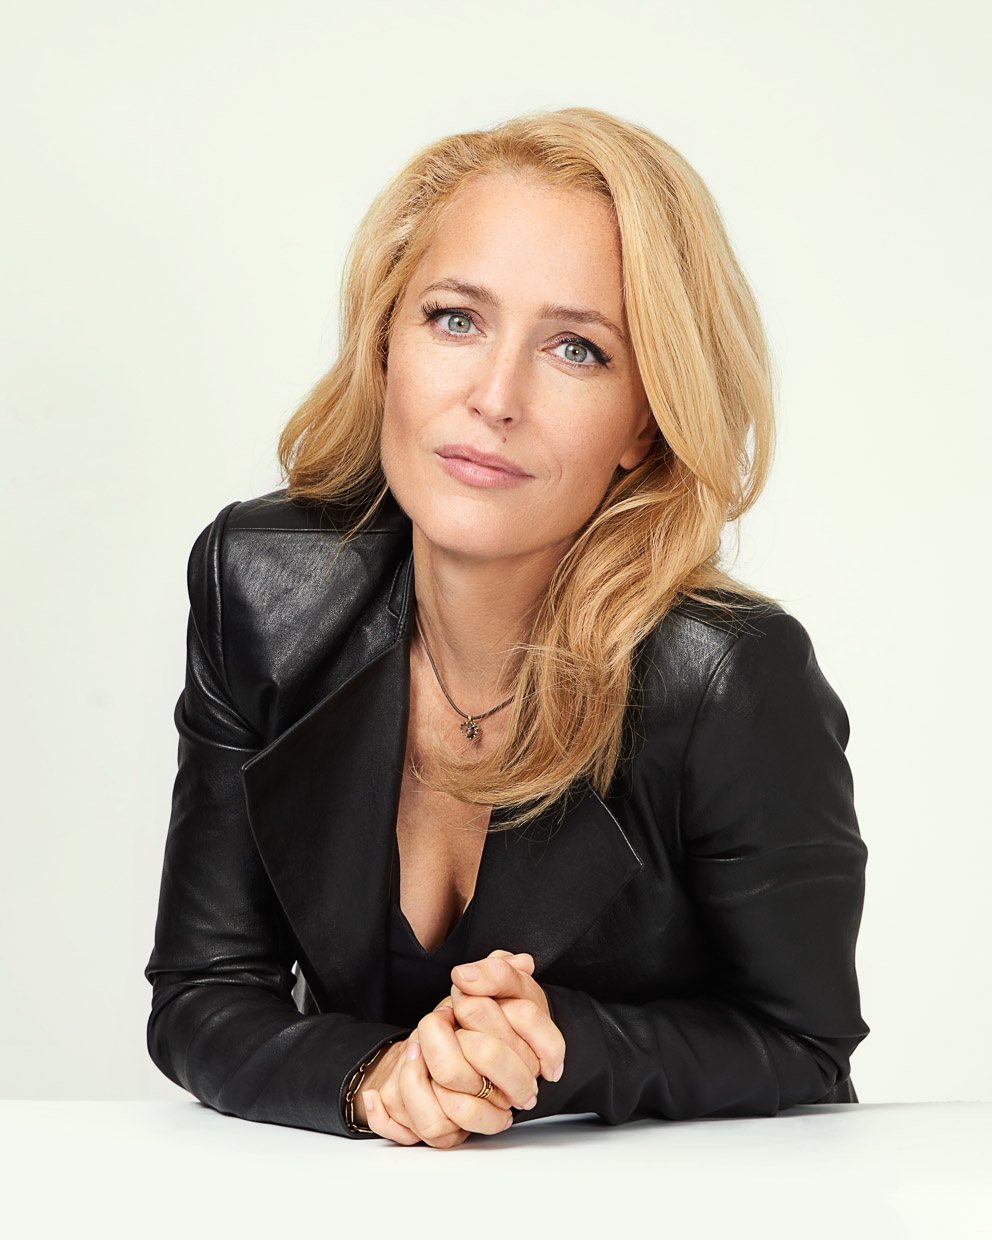 Gillian Anderson, The X-Files. Vulture.